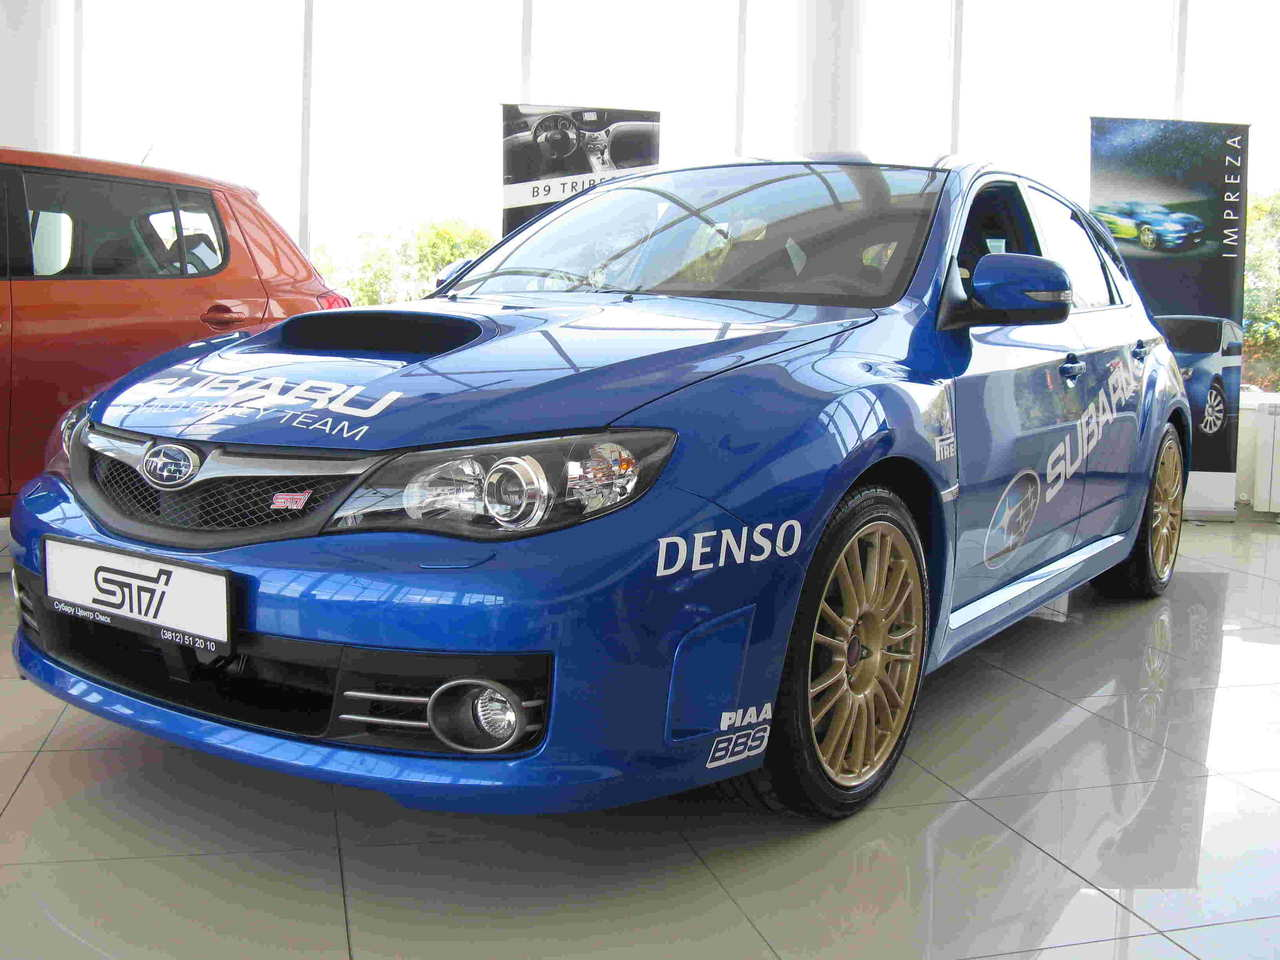 2008 subaru impreza wrx sti for sale 2 5 gasoline. Black Bedroom Furniture Sets. Home Design Ideas